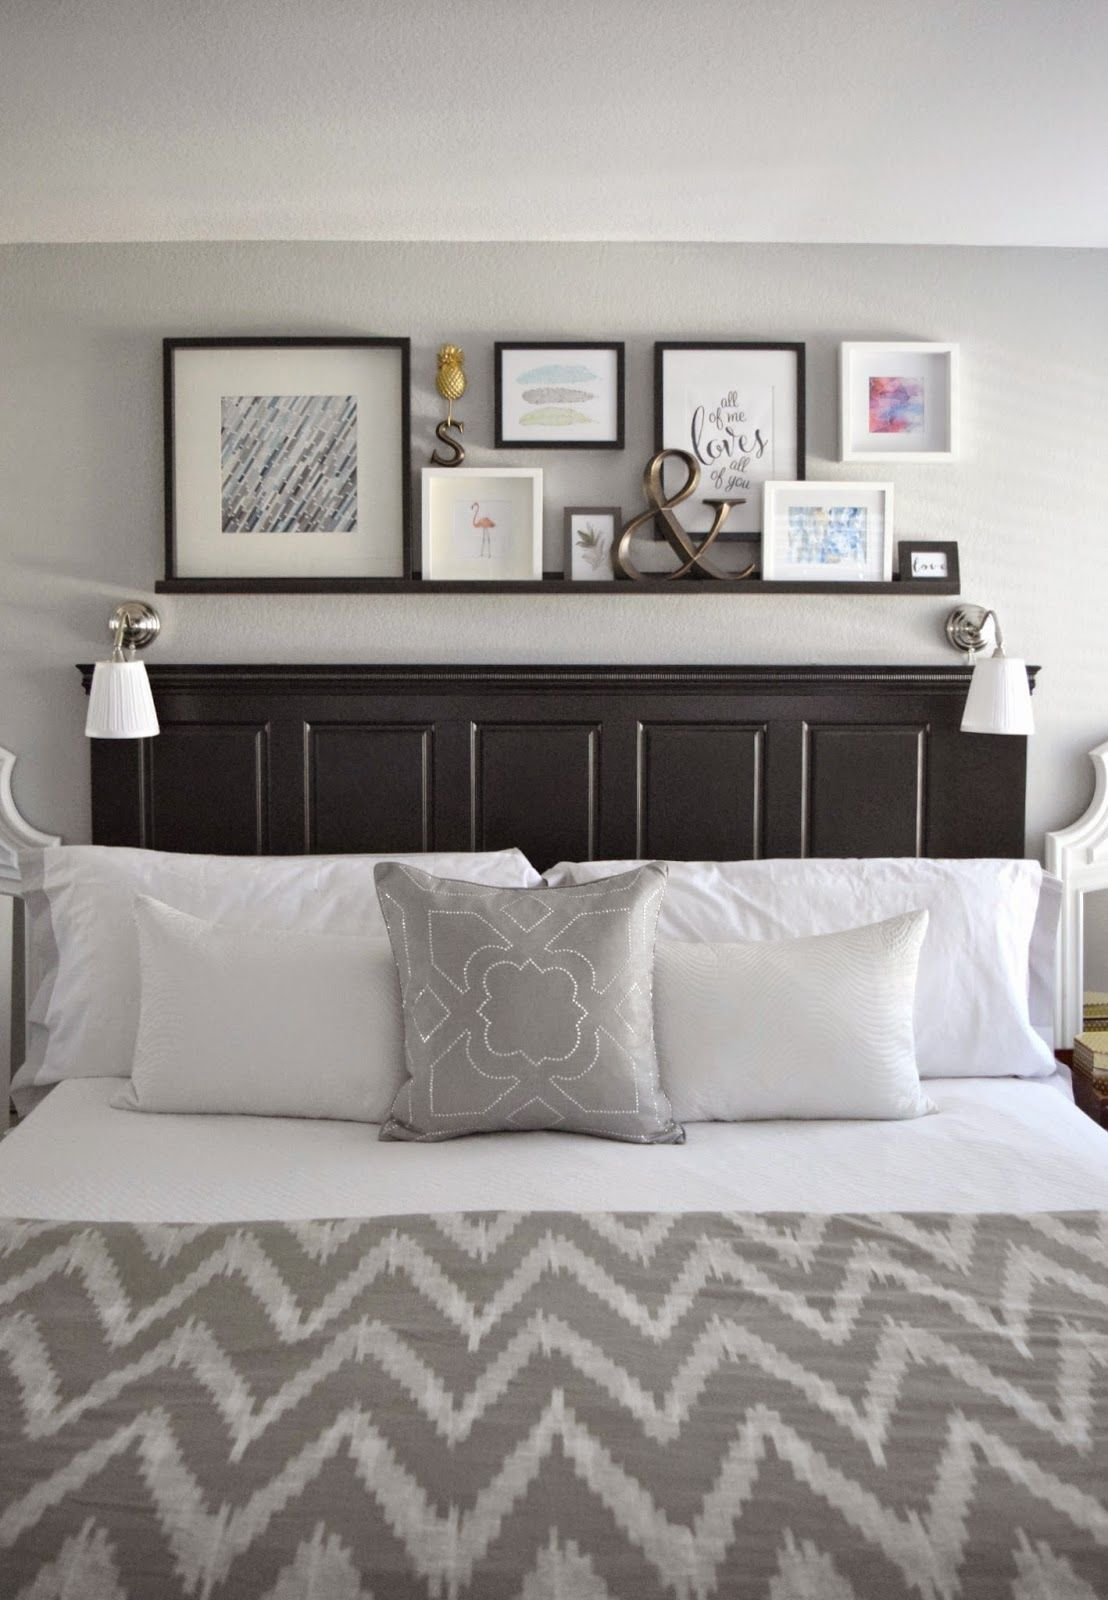 How To Decorate A Large Bedroom Wall 20 Decorating Tricks For Your Bedroom In 2019 Home Decor